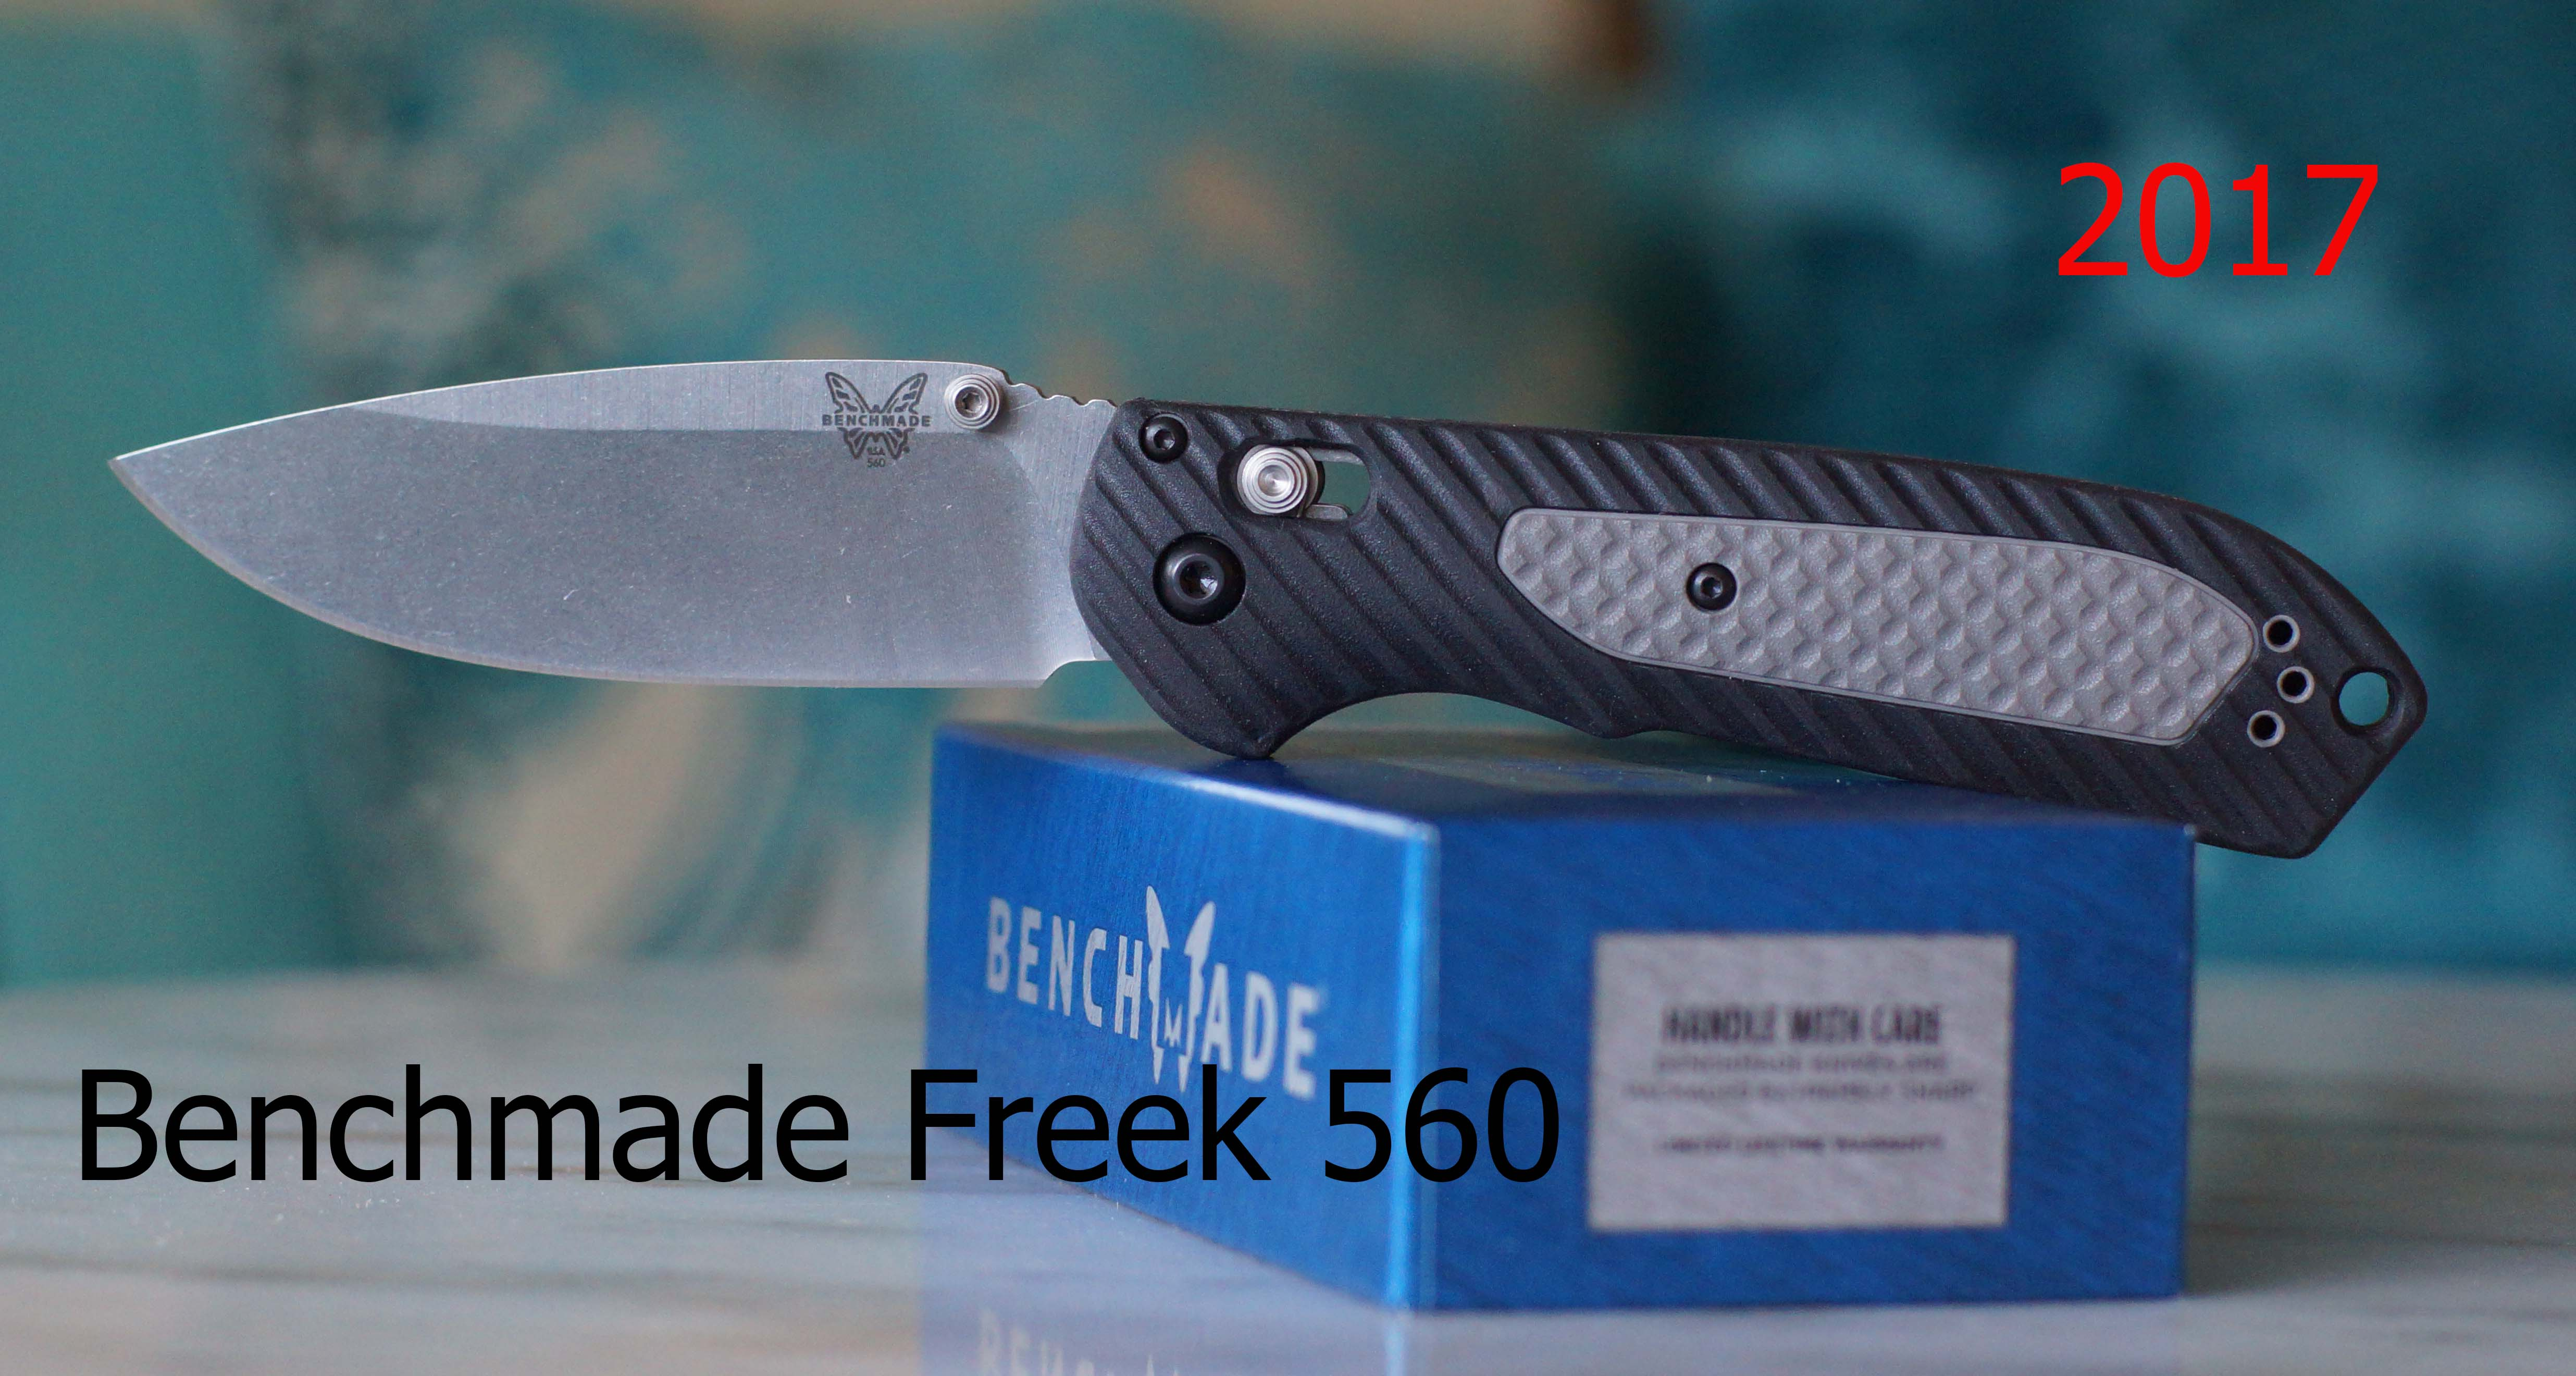 Benchmade Freek 560